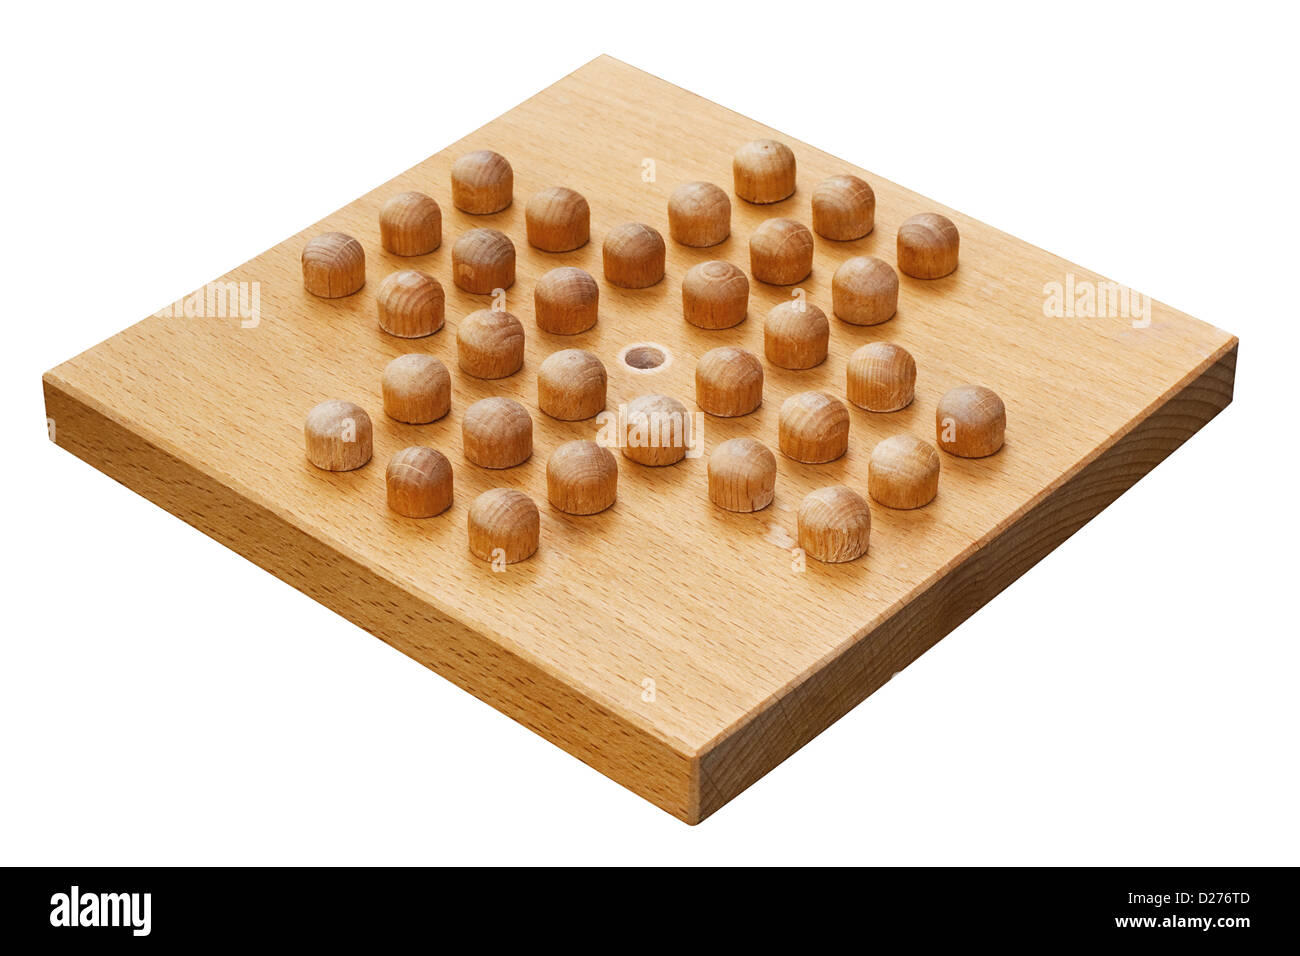 wooden peg solitaire board crafted from wood a popular indoor puzzle - Stock Image